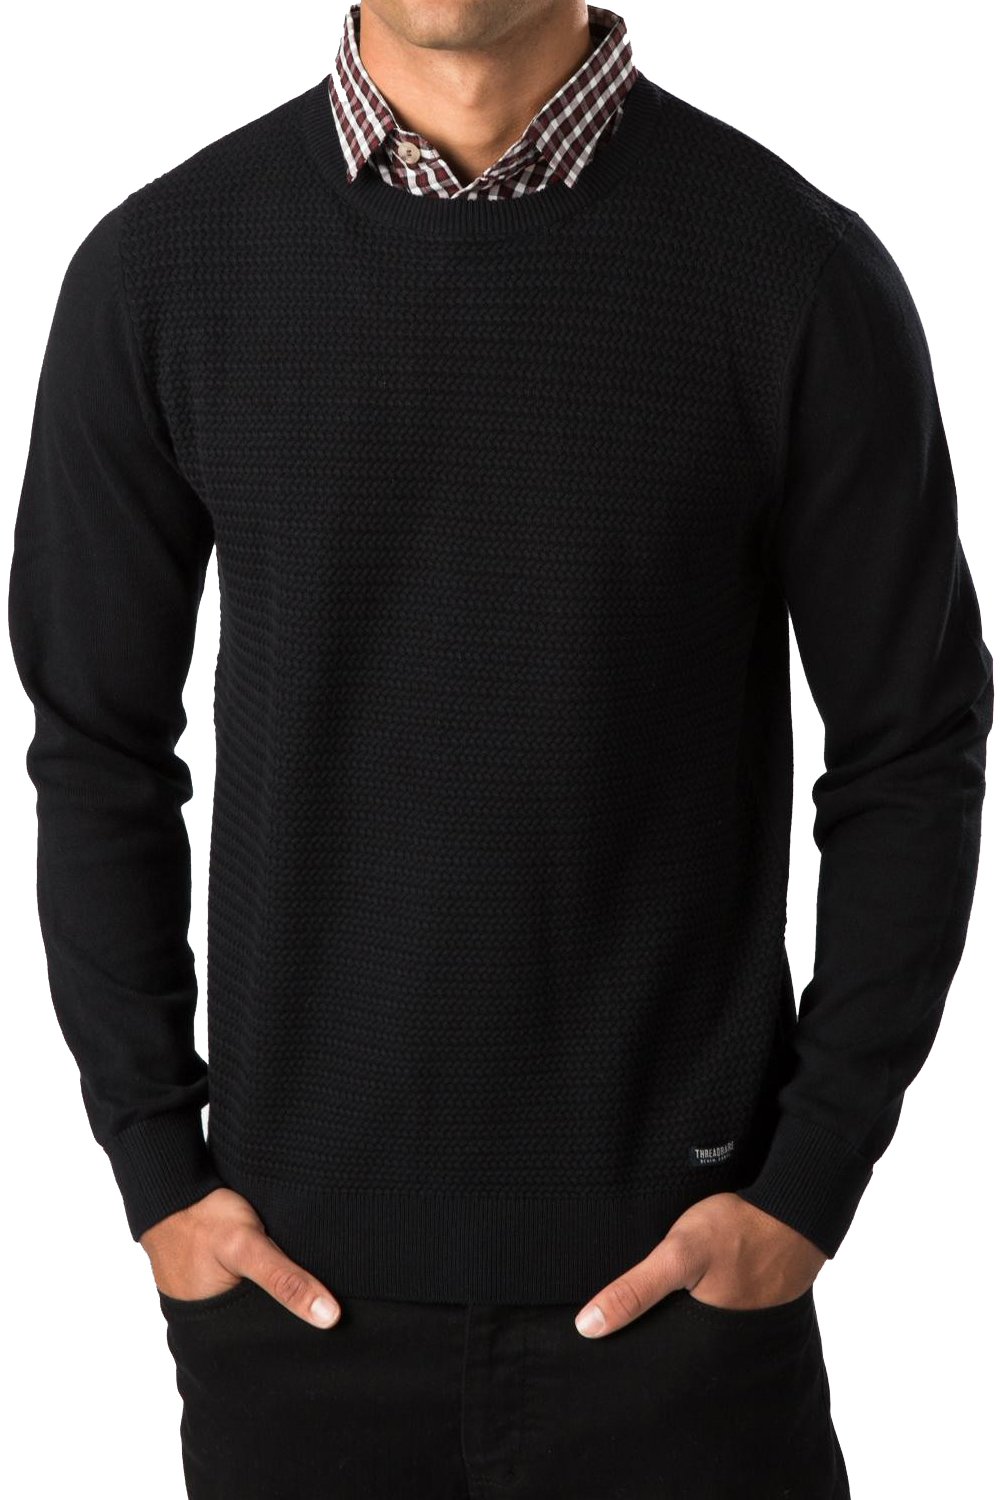 Find great deals on eBay for Mens Mock Neck Sweater in Sweaters and Clothing for Men. Shop with confidence.